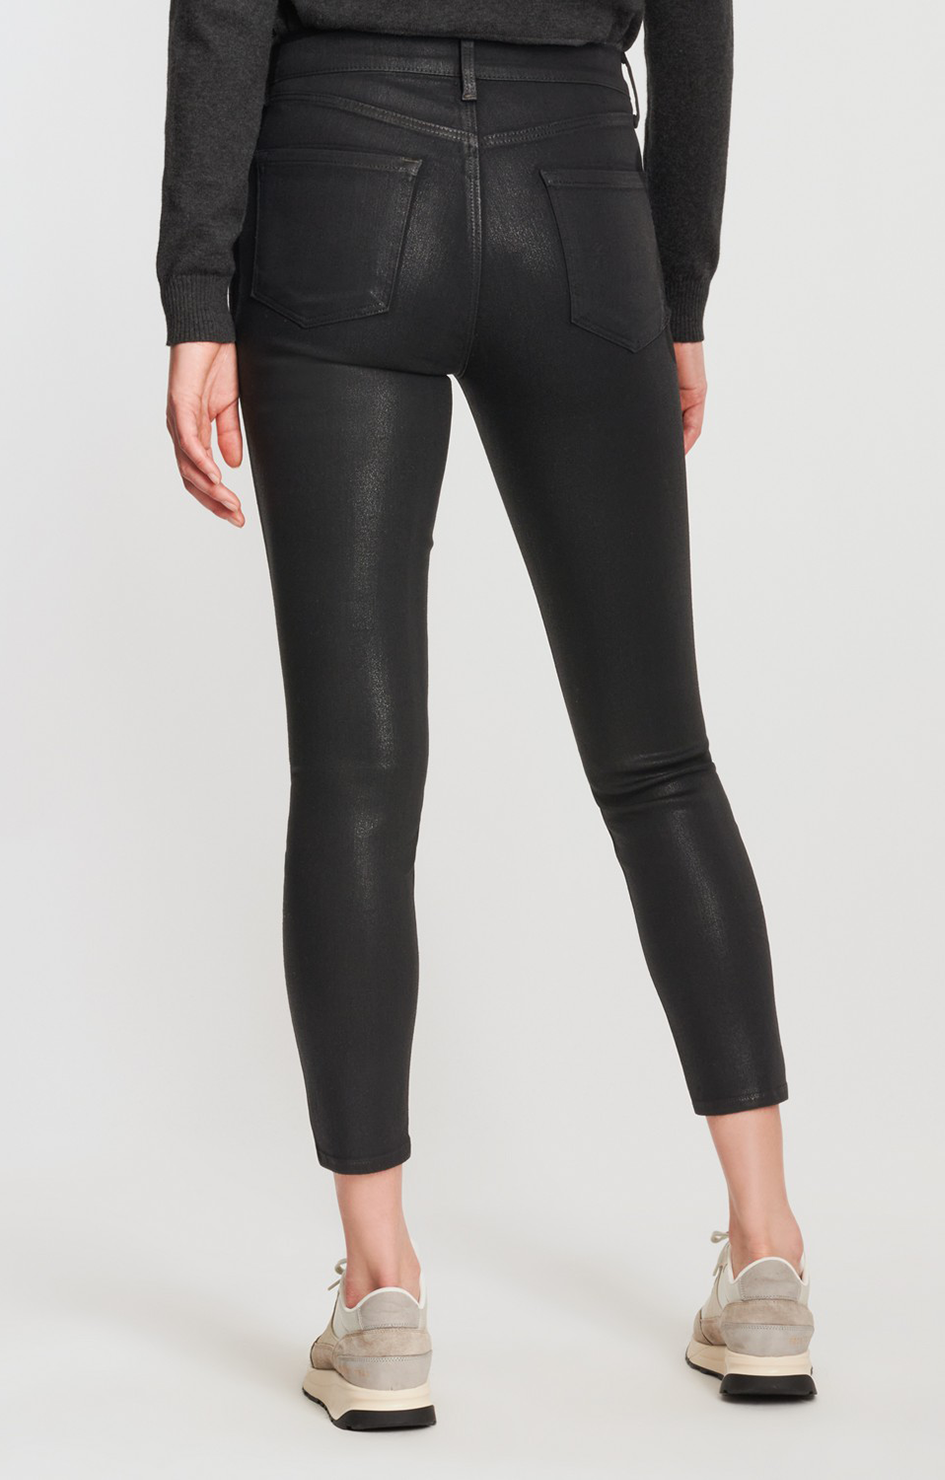 Alana High Rise Crop Skinny Jeans - Fearful